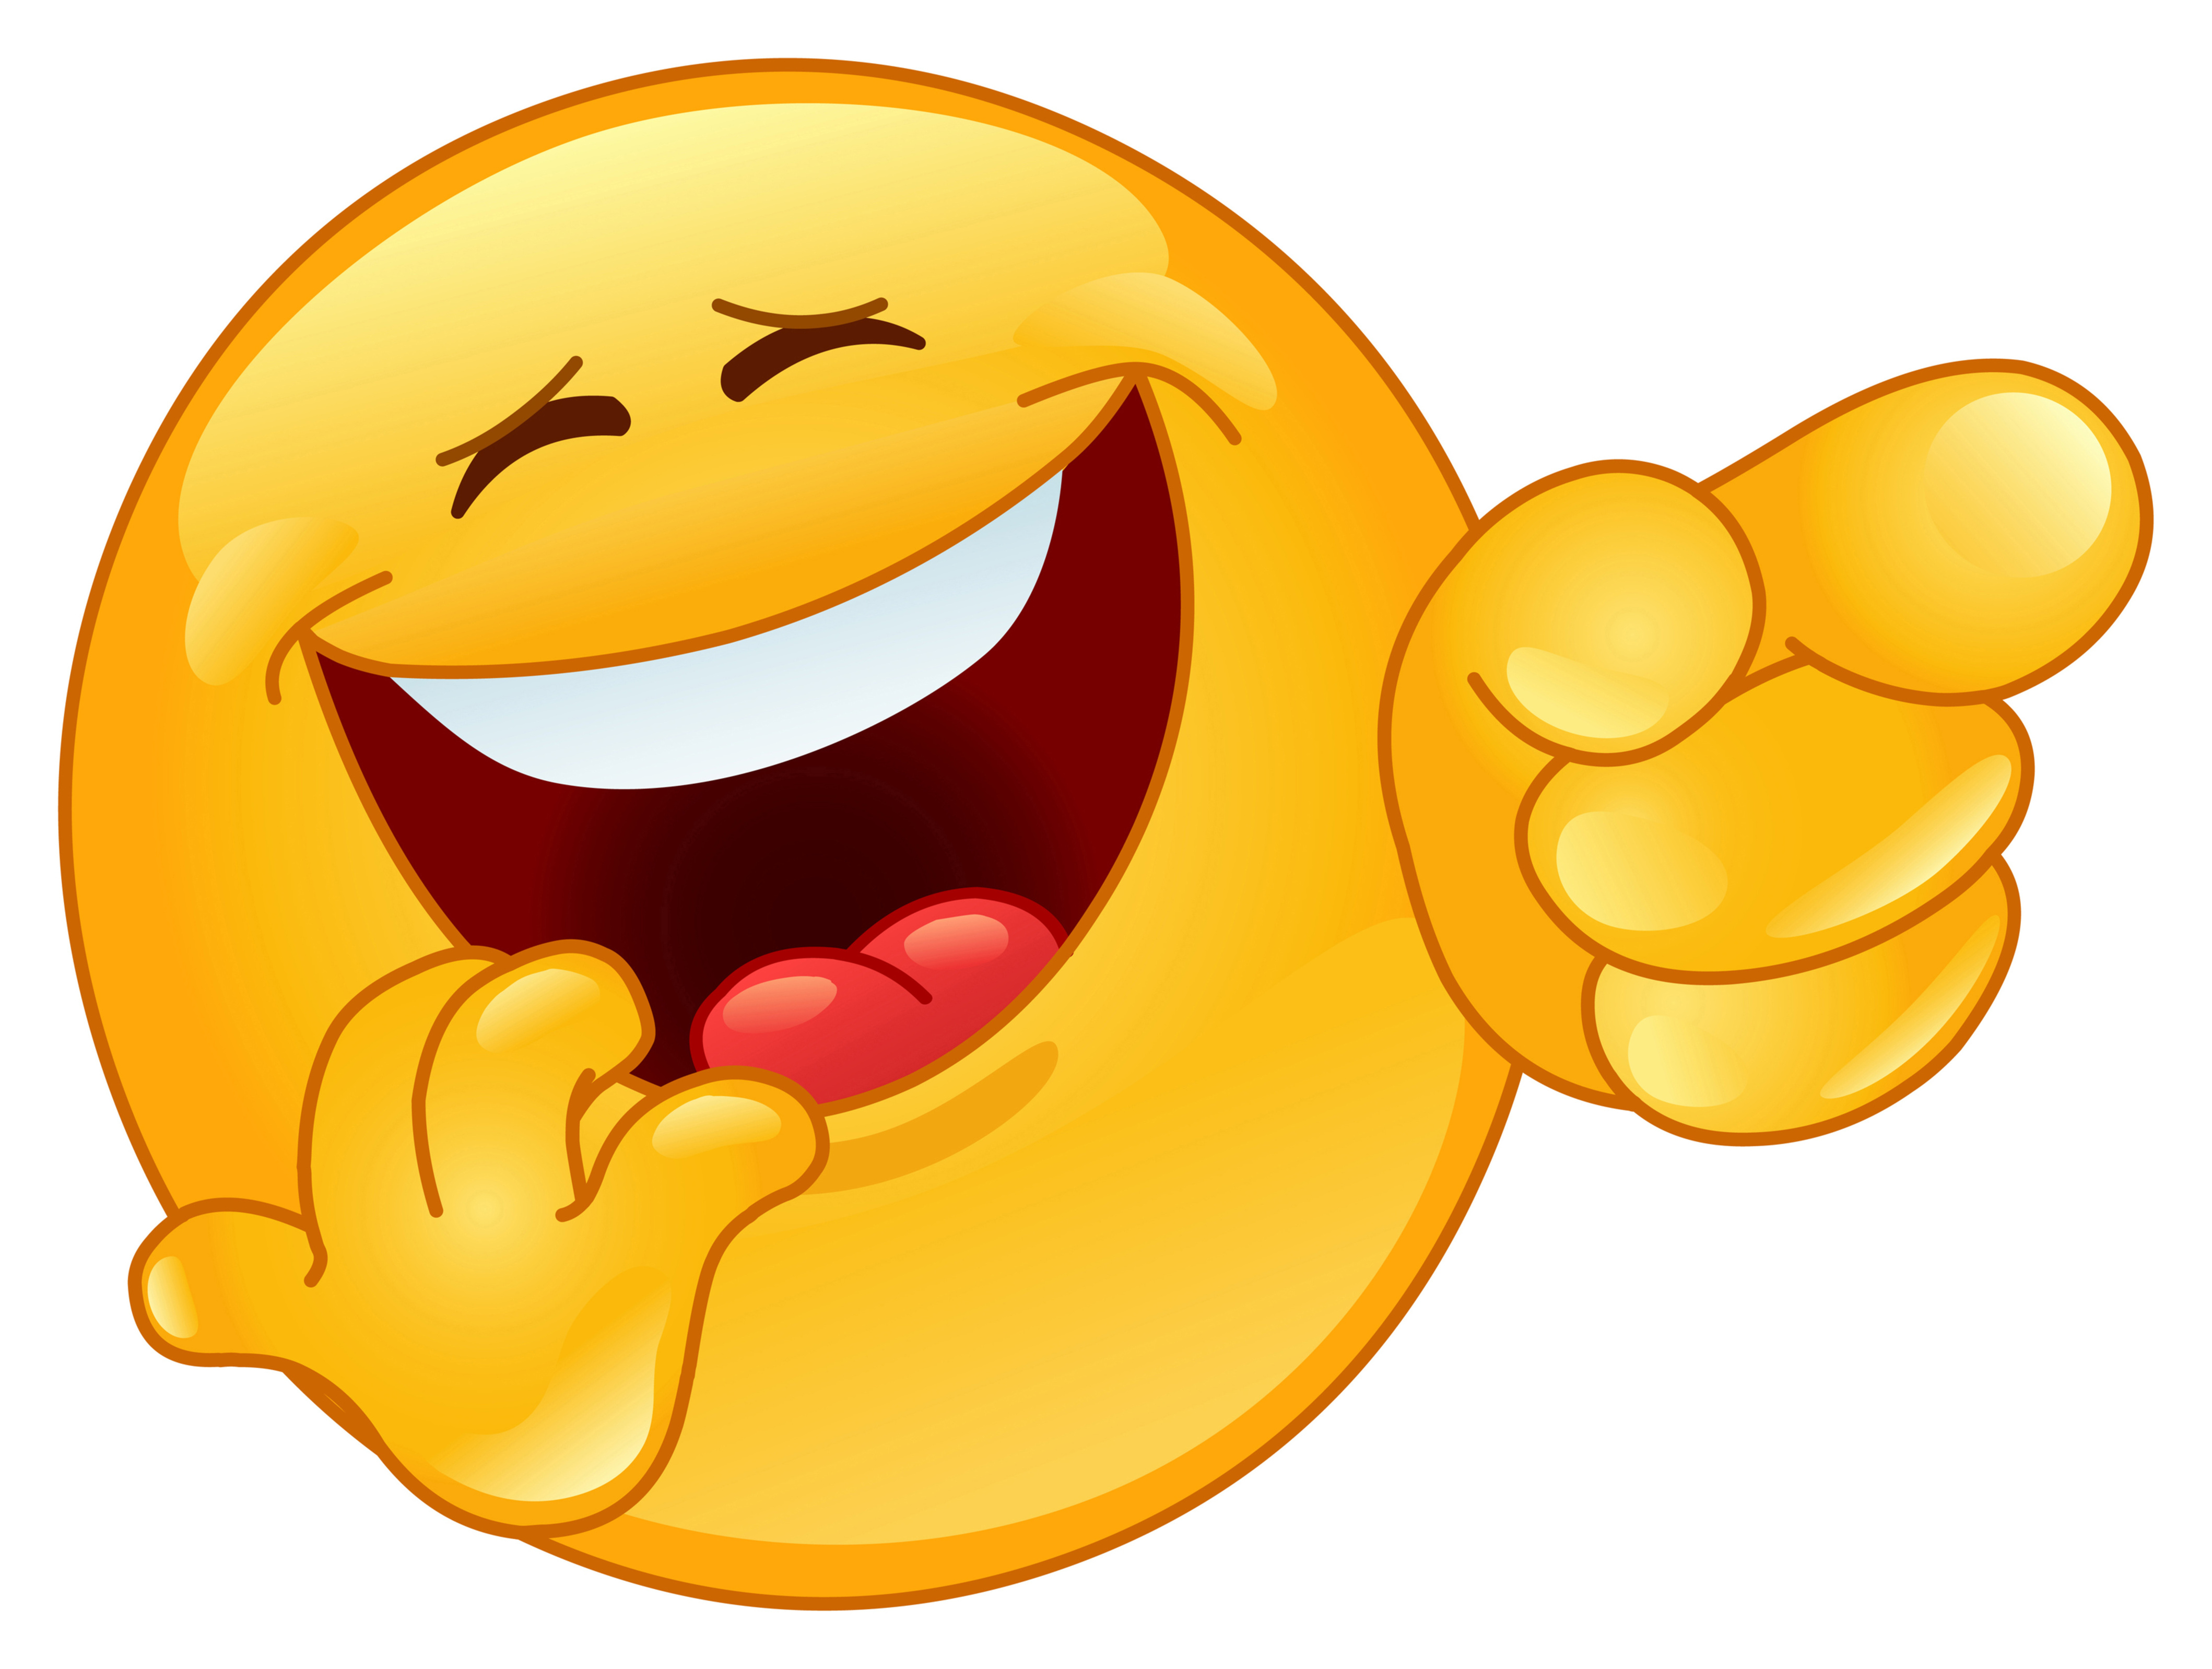 Owl laughing clipart.